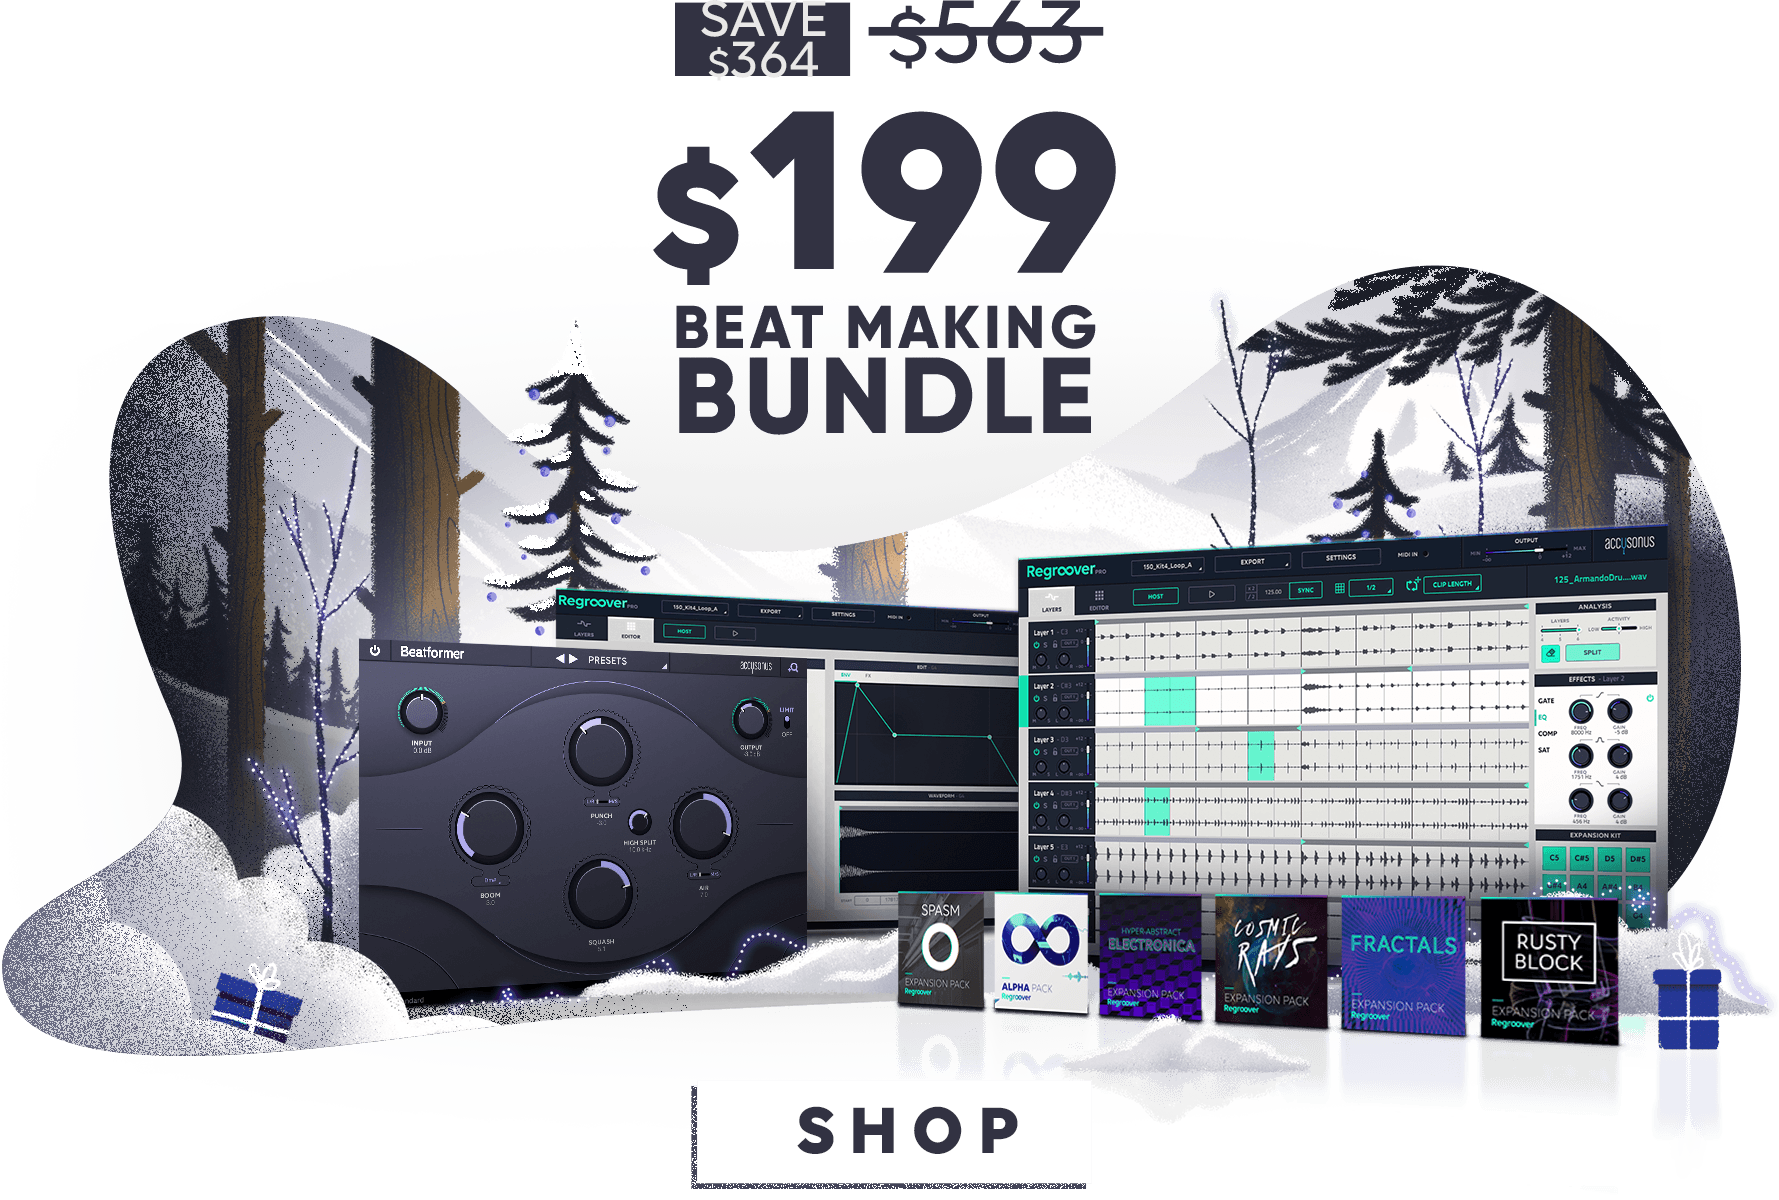 Beat making bundle, end of year sale